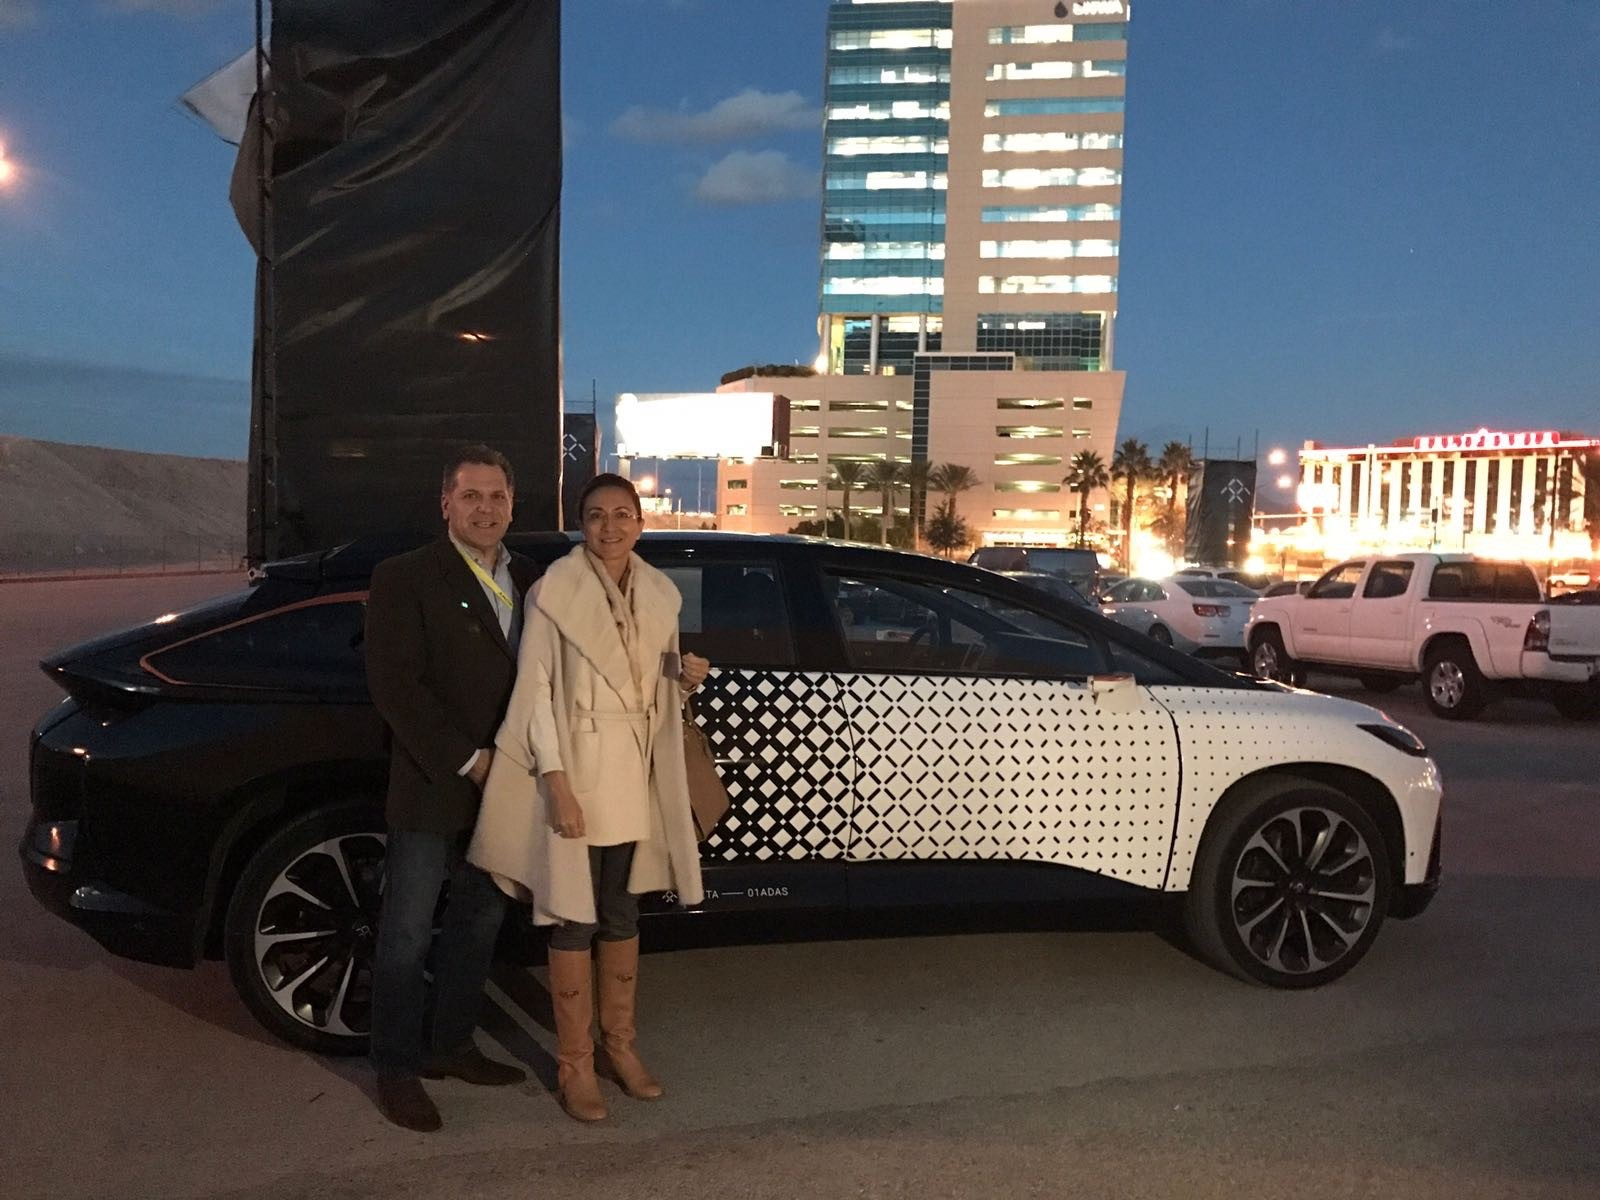 John Bukowicz, LIASE Group Managing Director Americas (left) and Vanessa Moriel, LIASE Group Managing Director Asia (right) pose in front of the FF91 reveal outside of CES 2017 in Las Vegas.